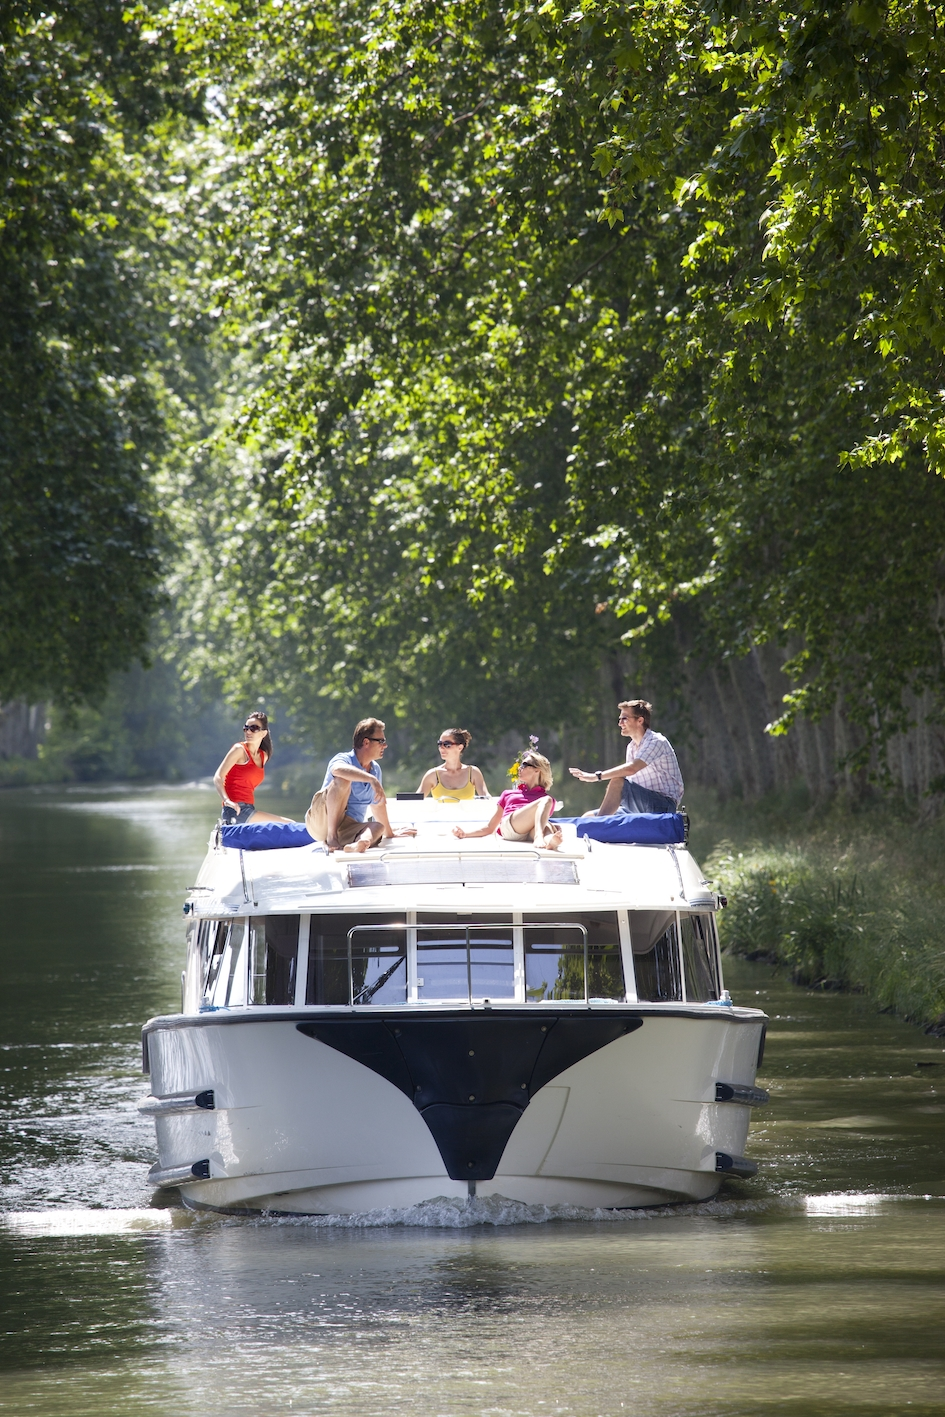 Explore The French Canals